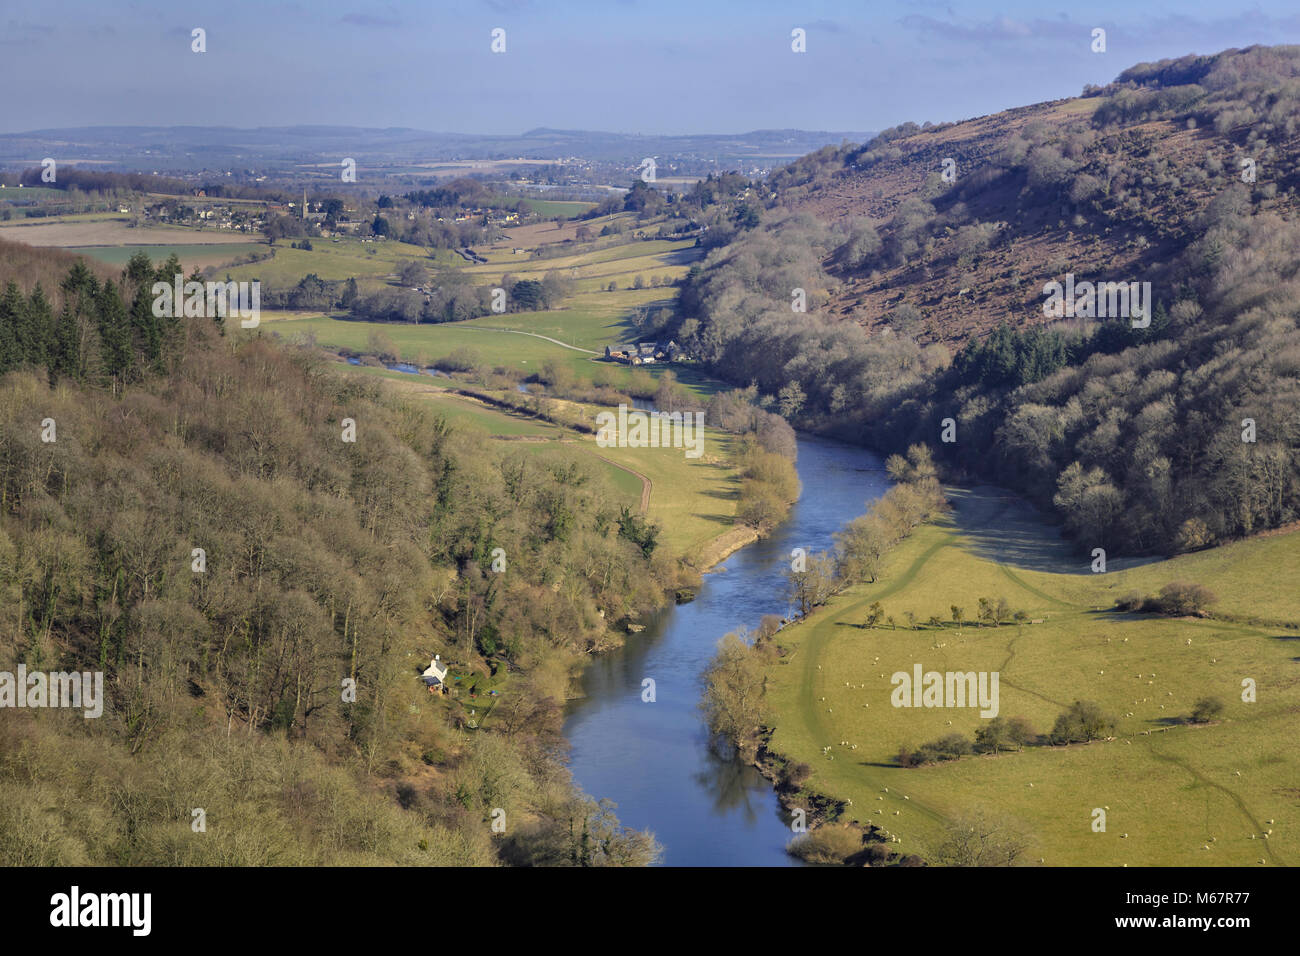 The River Wye at Symonds Yat, Herefordshire, England, UK, seen from the Yat Rocks. - Stock Image